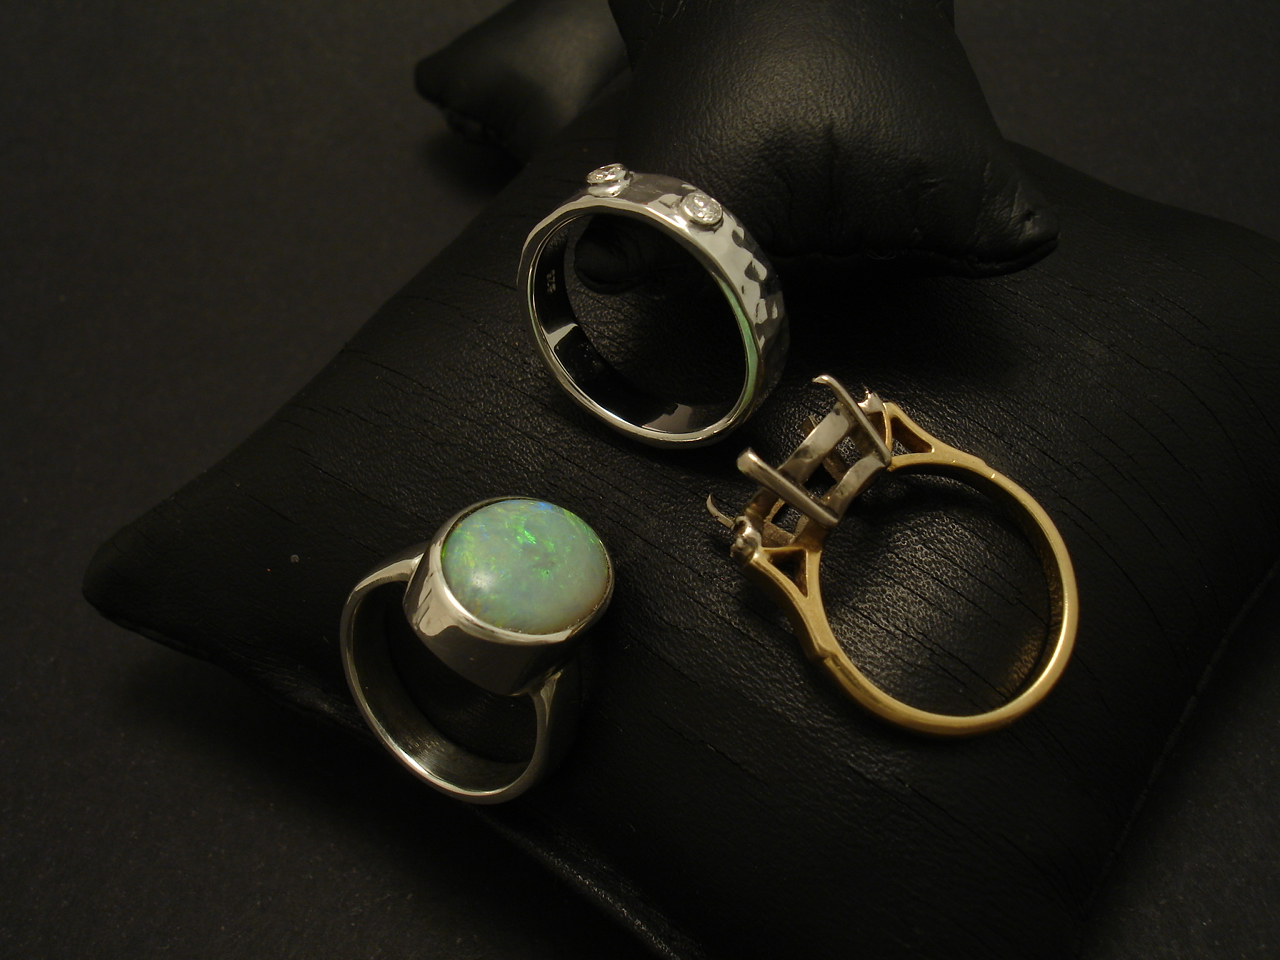 b4dc4c9f983d1 Opal Ring & Diamond Ring Custom Made in Silver - Christopher William ...